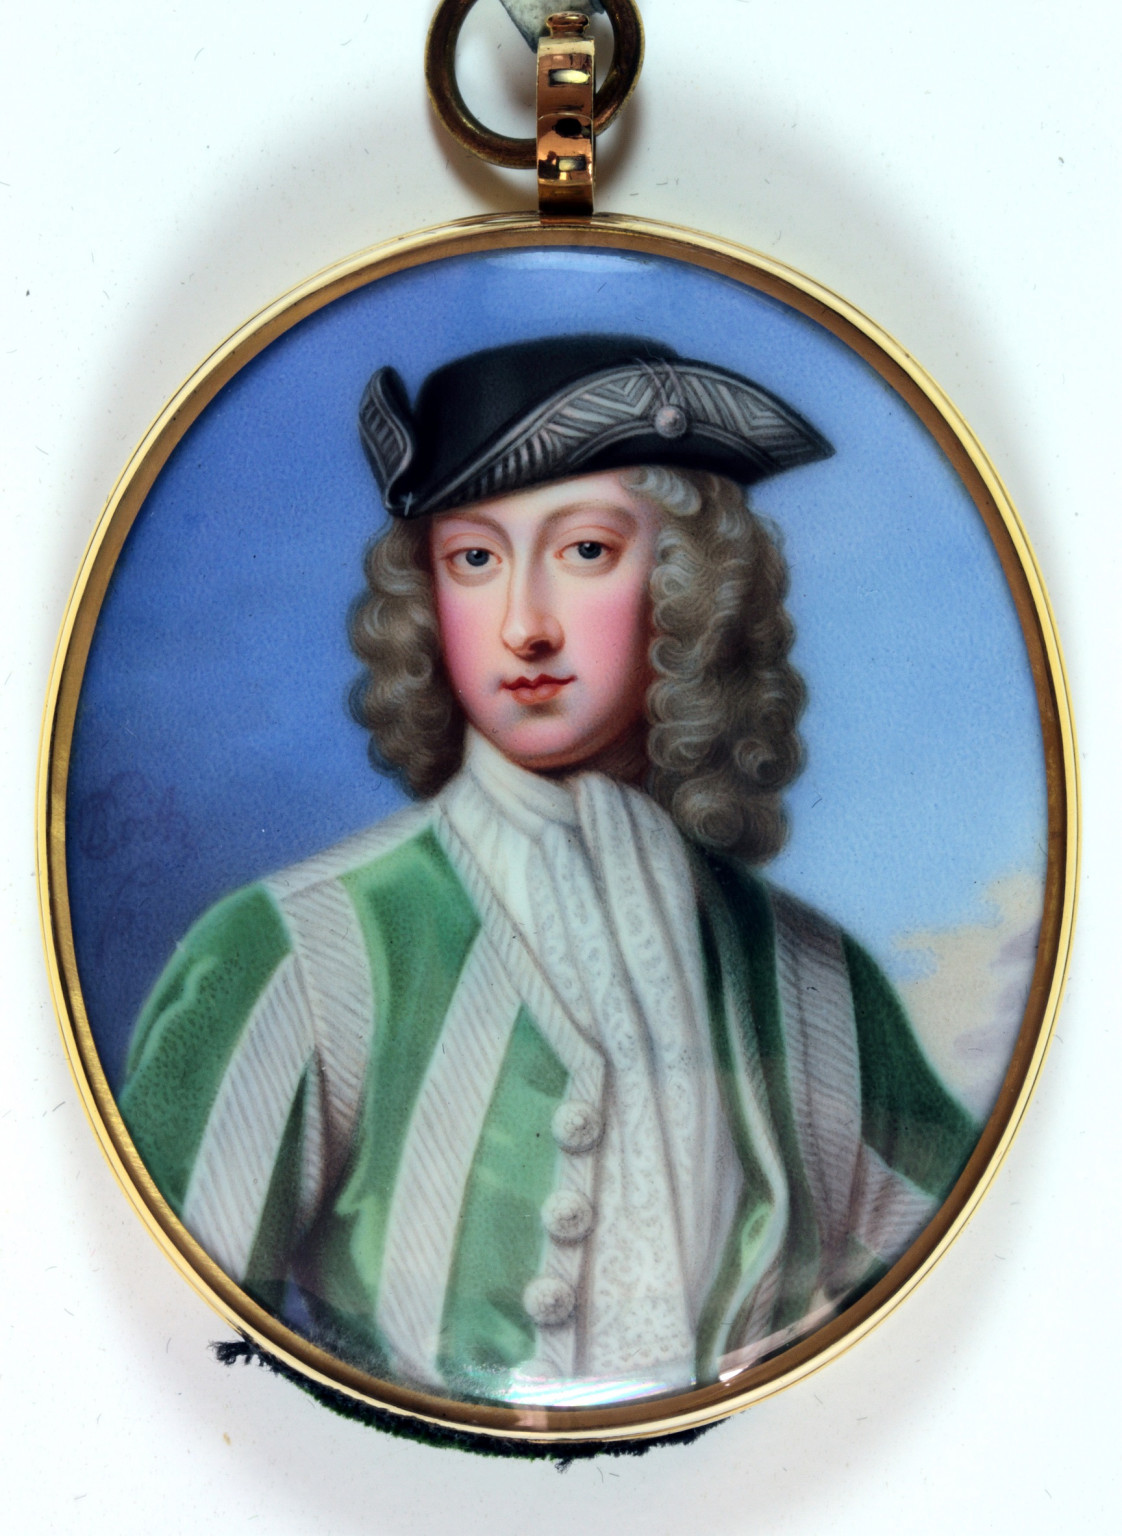 Lady Henrietta Cavendish-Holles, Countess of Oxford